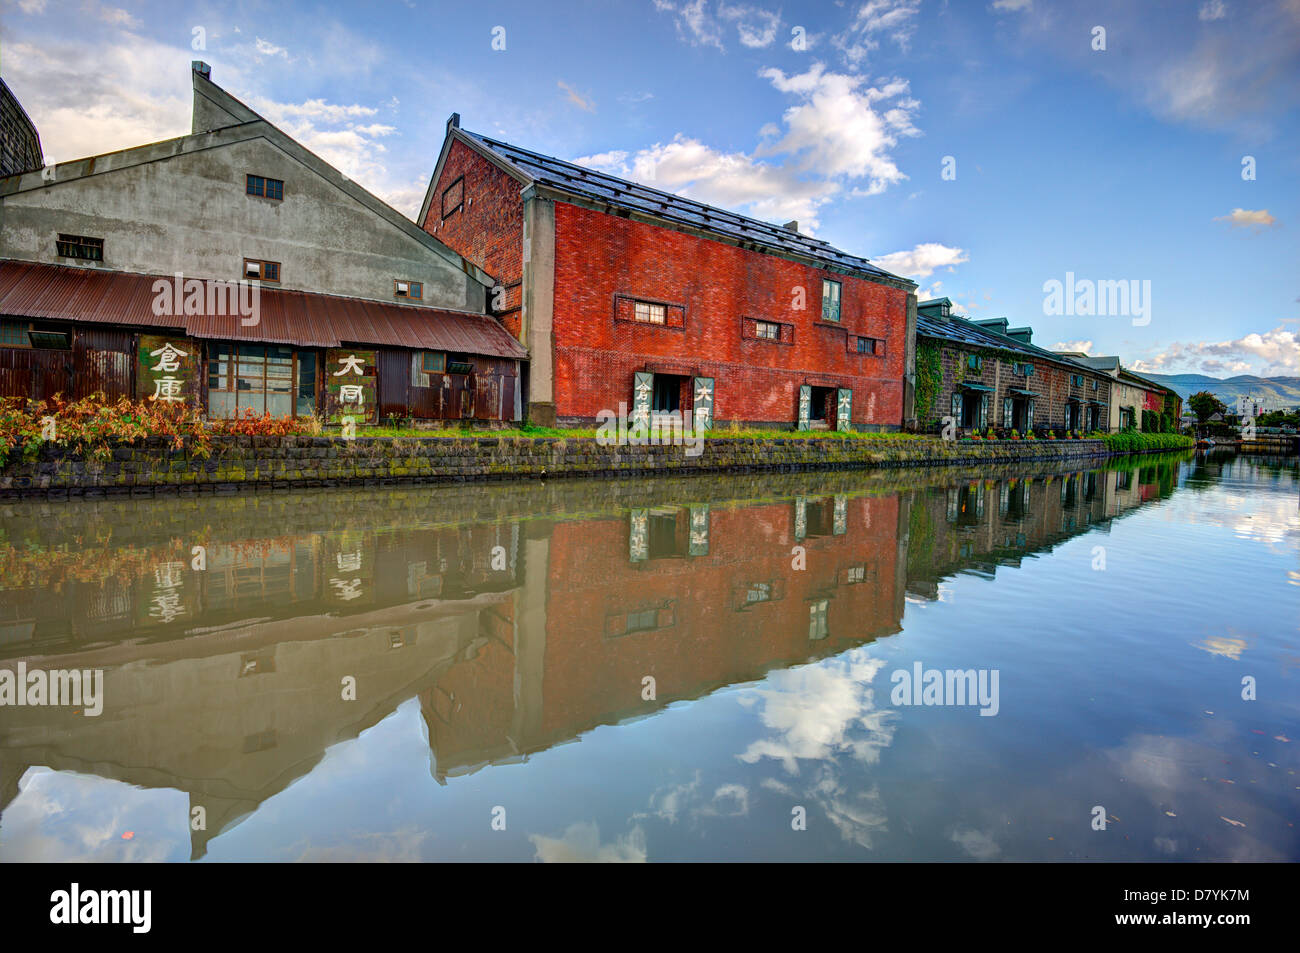 Warehouses of Otaru, Japan. - Stock Image